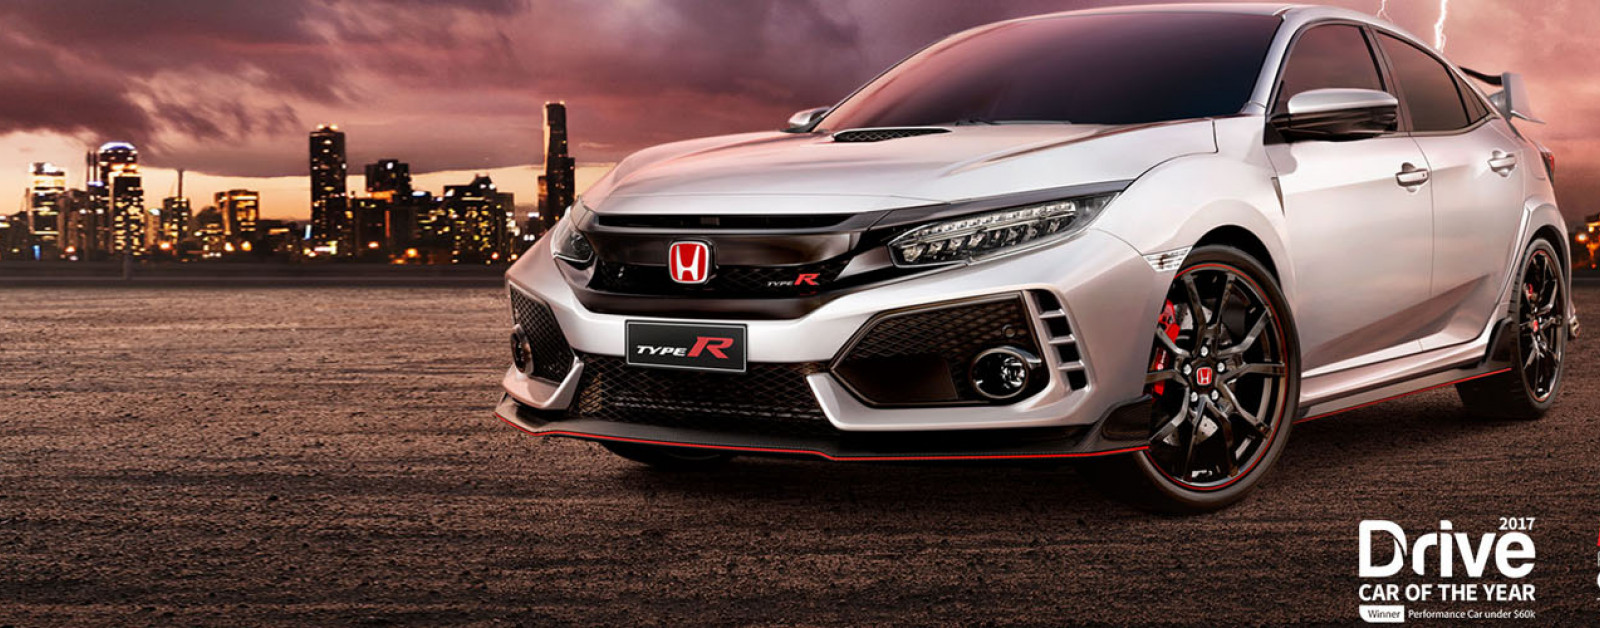 Civic Hatch Type R